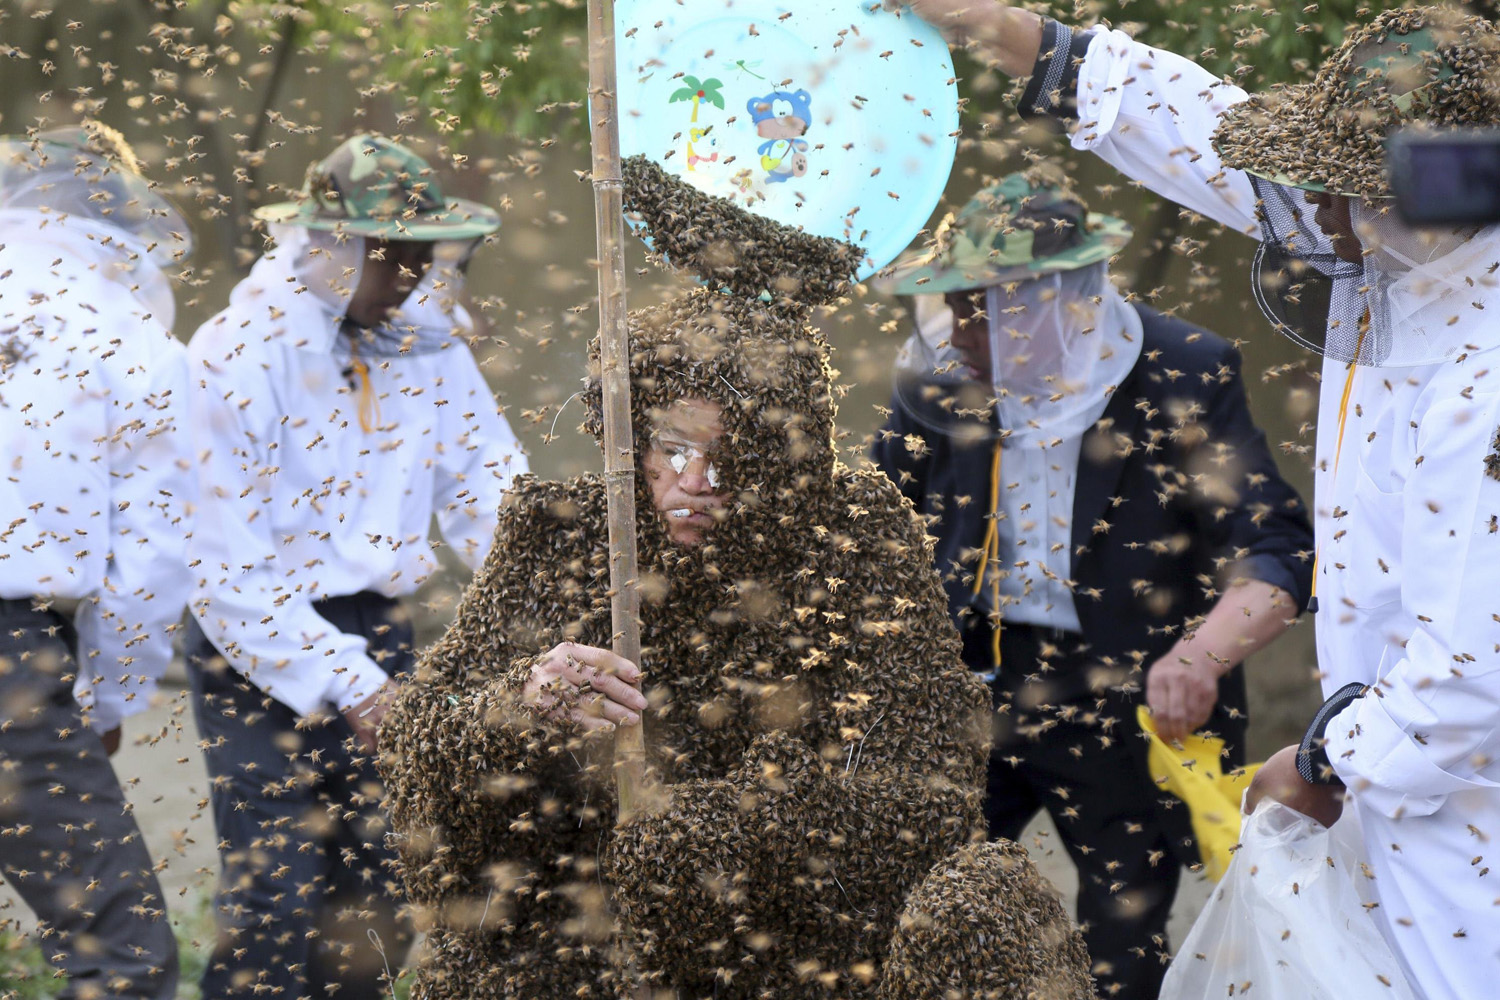 Gao Bingguo is covered with bees during an attempt to break the Guinness World Record for being covered by the largest number of bees, in Taian, Shandong province, China on May 27, 2014.